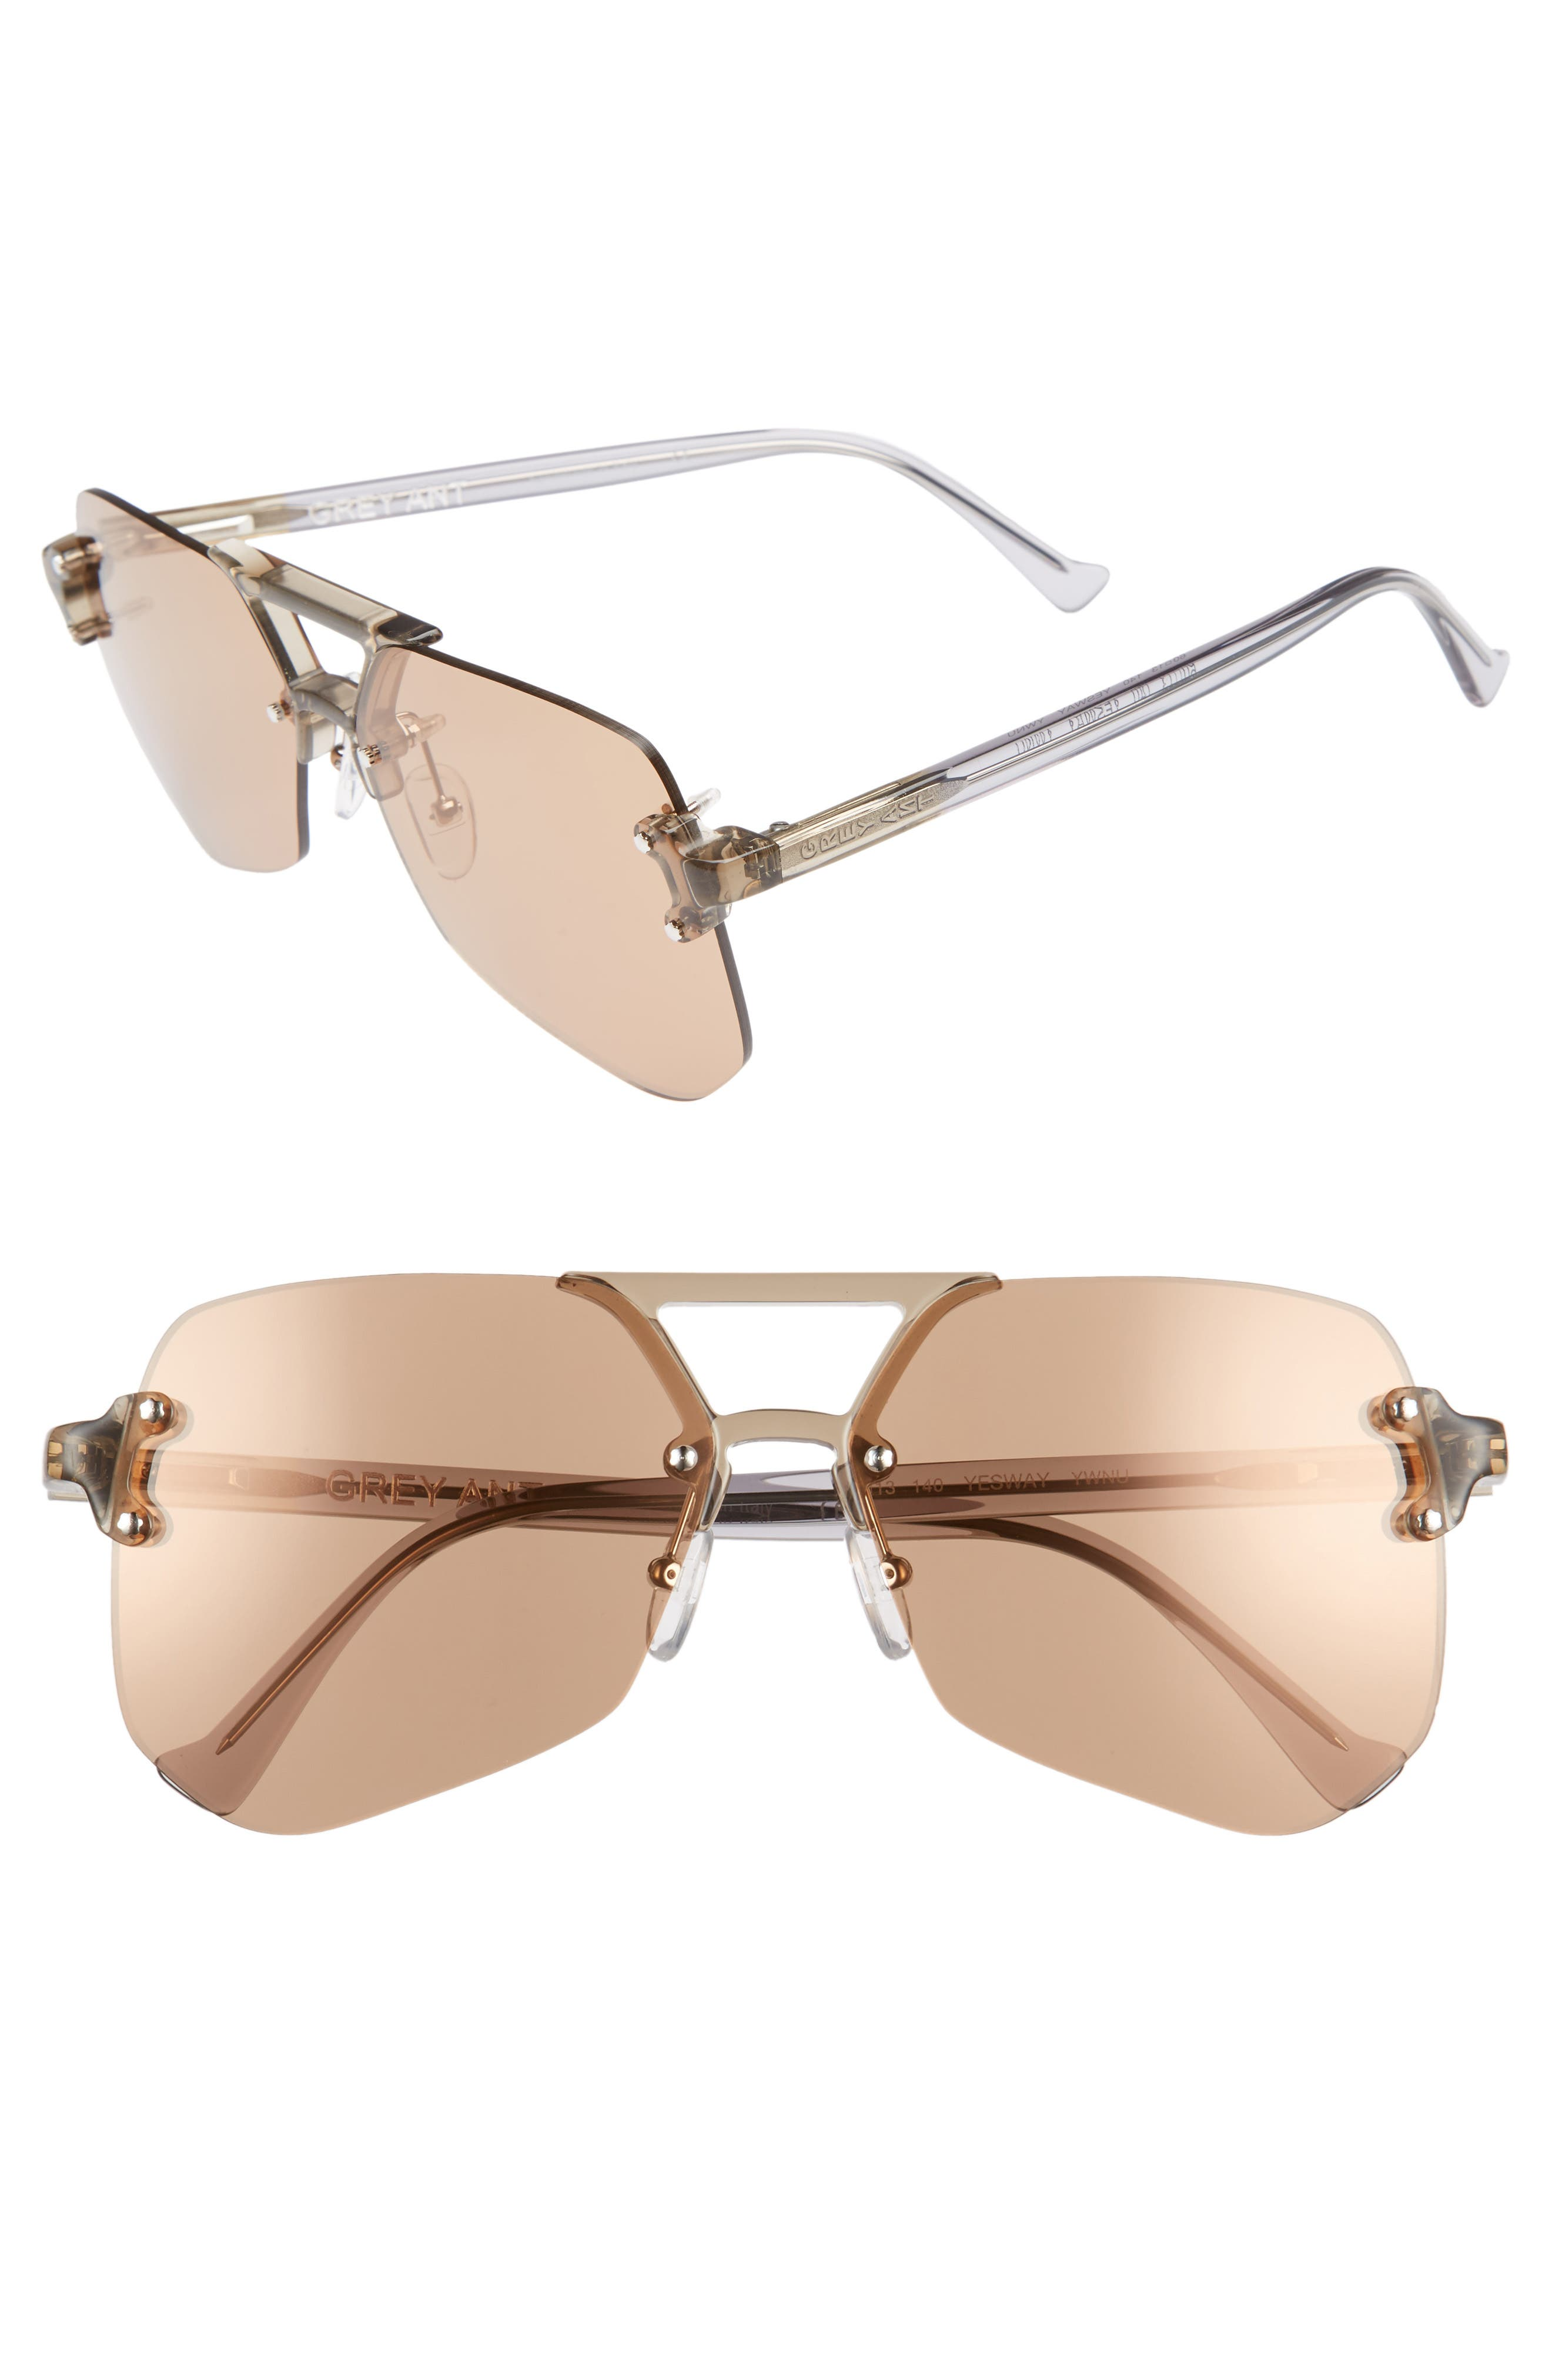 YESWAY 60MM SUNGLASSES - TAN LENS/ SILVER HARDWARE